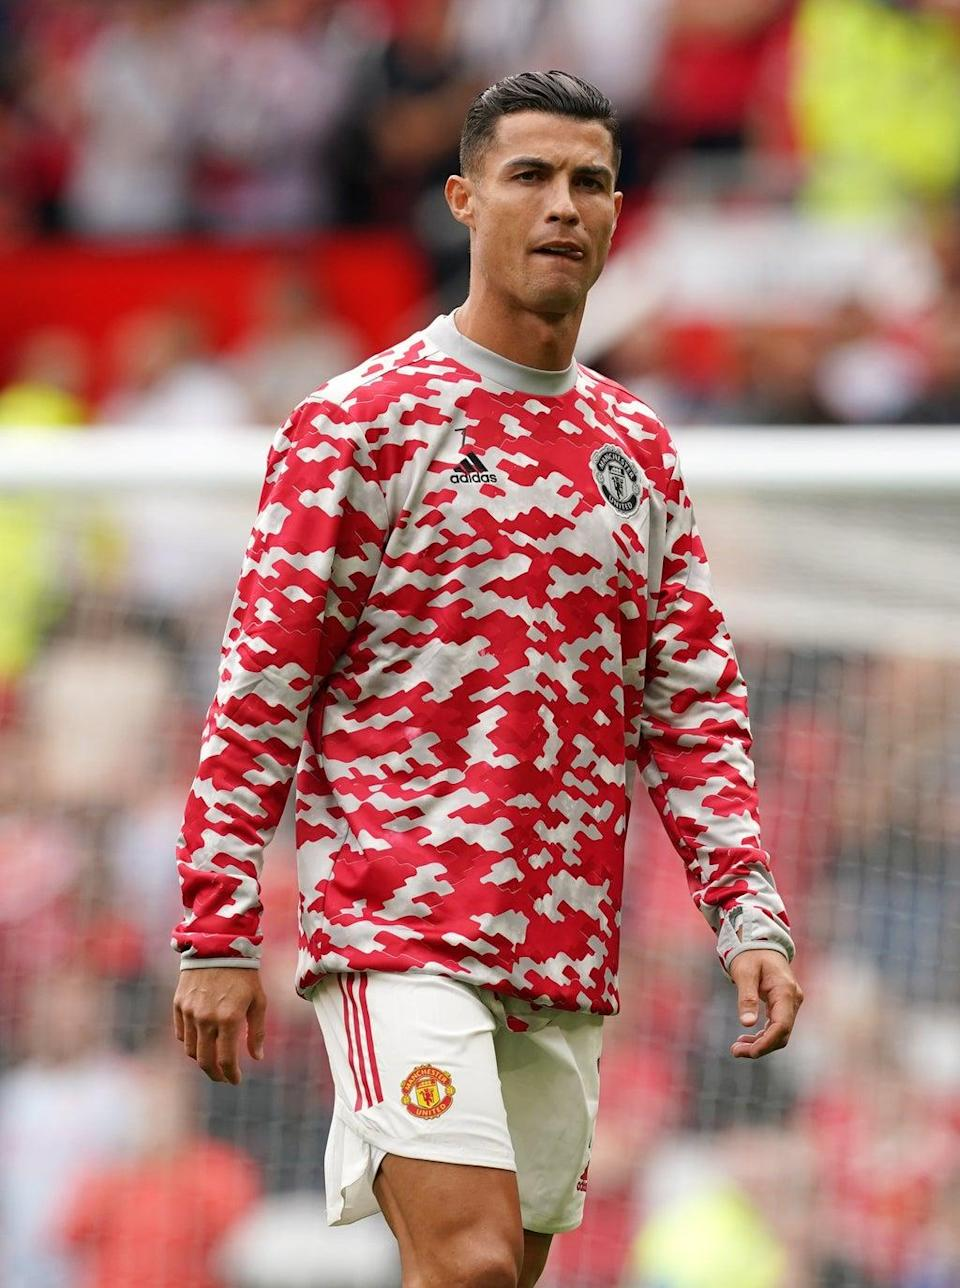 Manchester United's Cristiano Ronaldo warms up prior to kick-off in the Premier League match at Old Trafford (PA) (PA Wire)